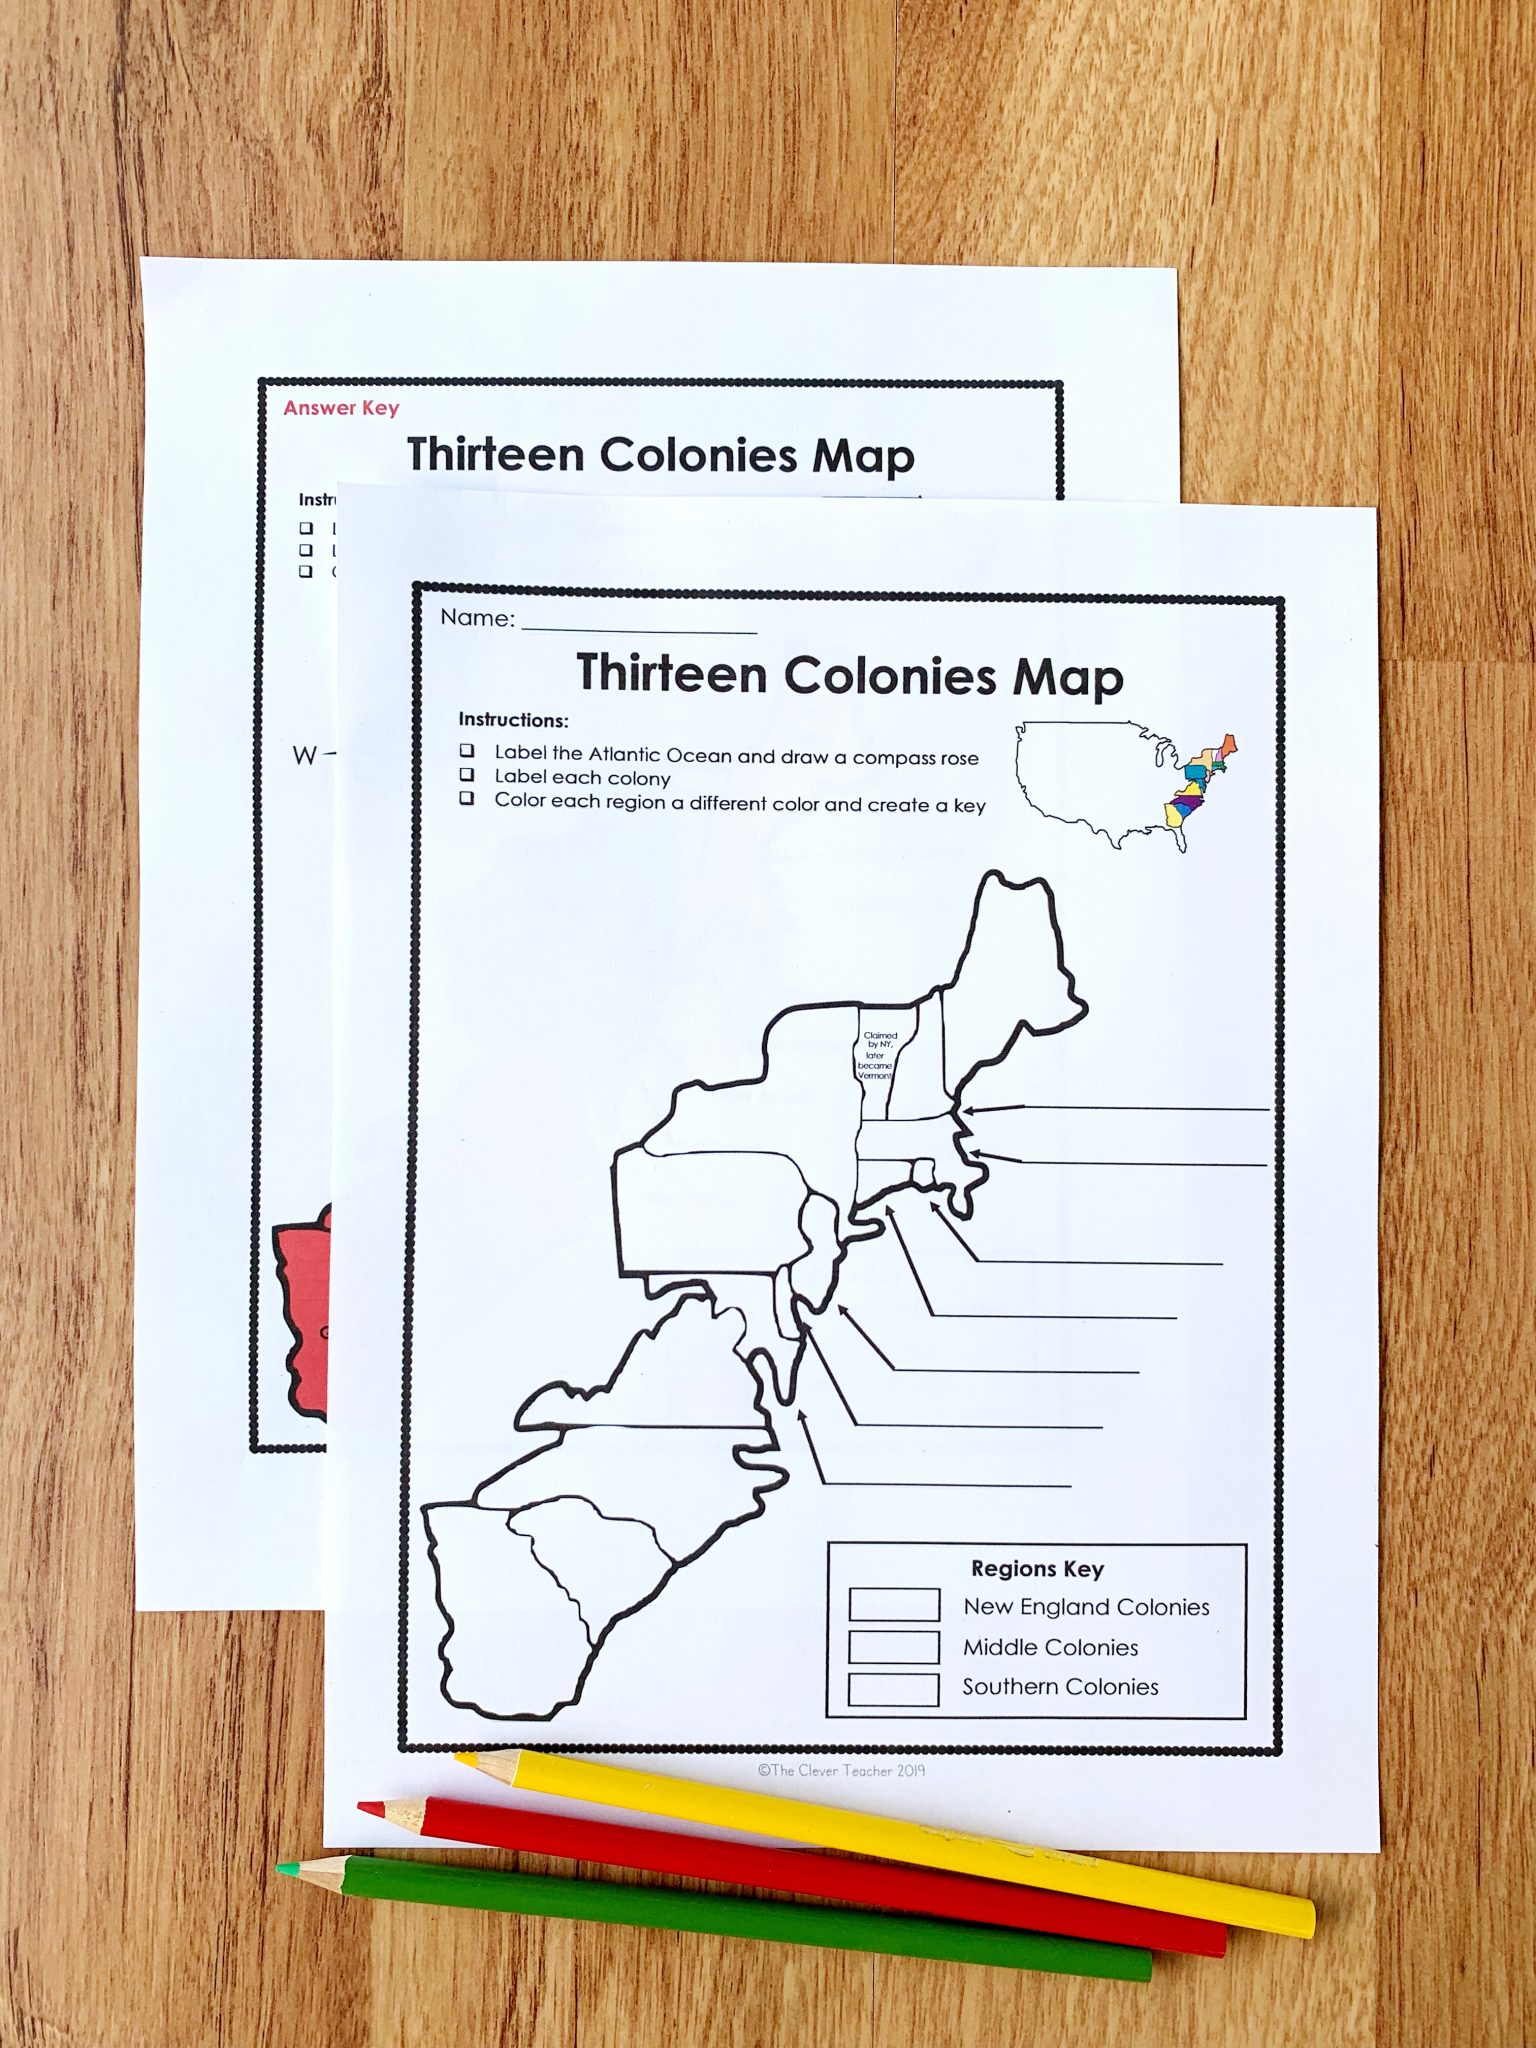 13 Colonies Free Map Worksheet and Lesson for students [ 1024 x 768 Pixel ]